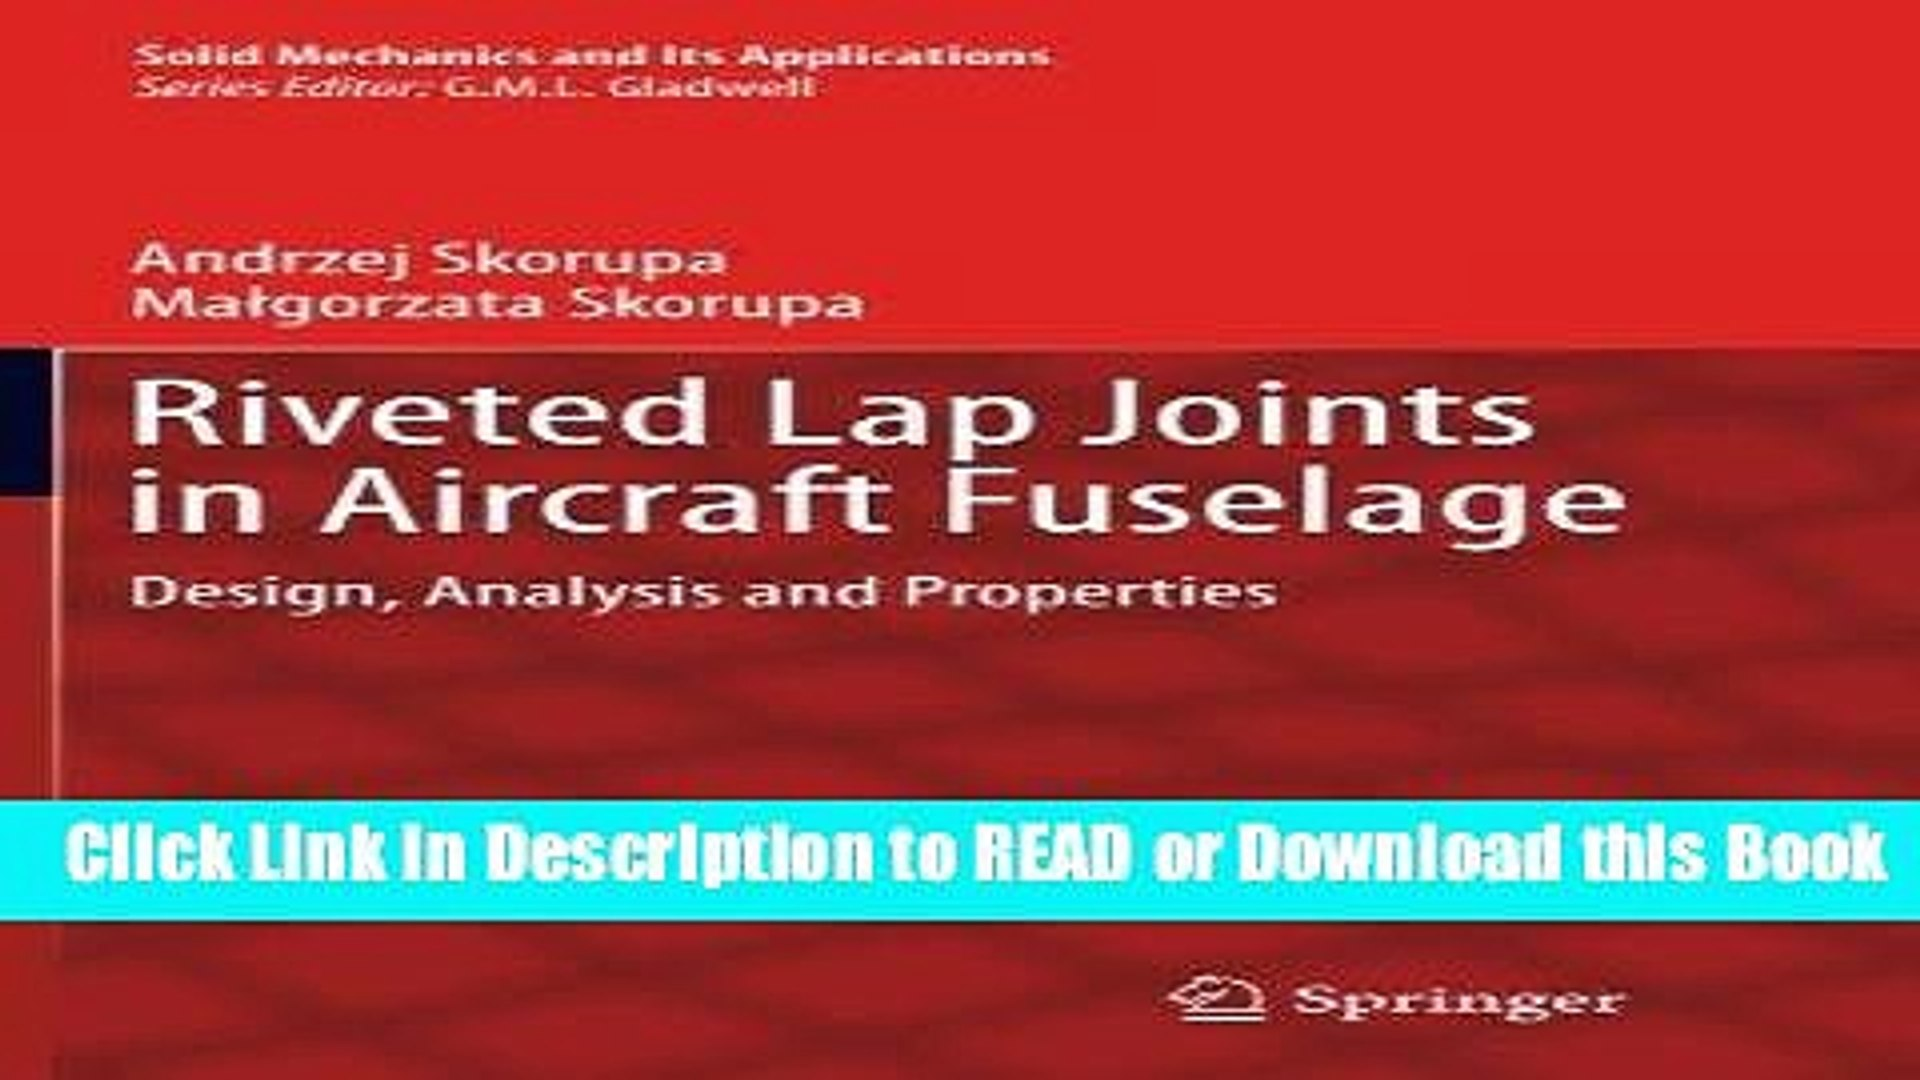 Riveted Lap Joints in Aircraft Fuselage: Design, Analysis and Properties